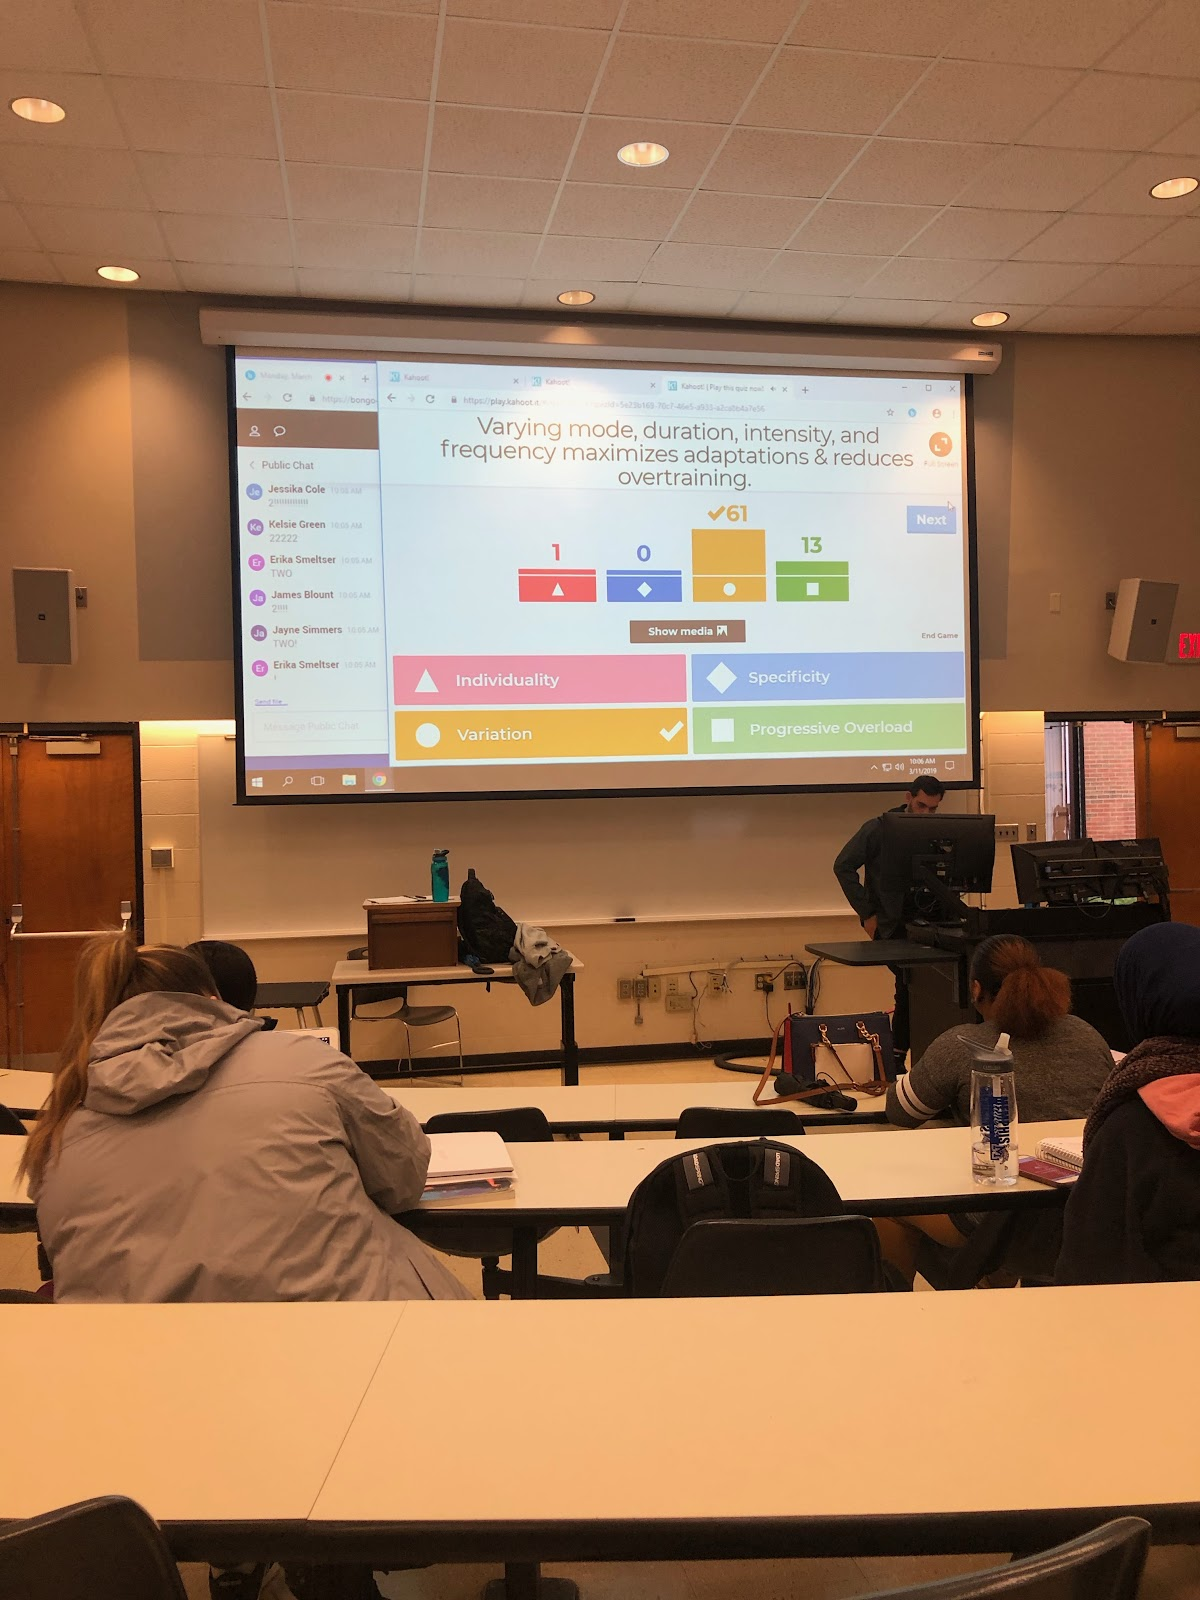 This is an image of the feedback provided by Kahoot! immediately after a question is answered by the class.